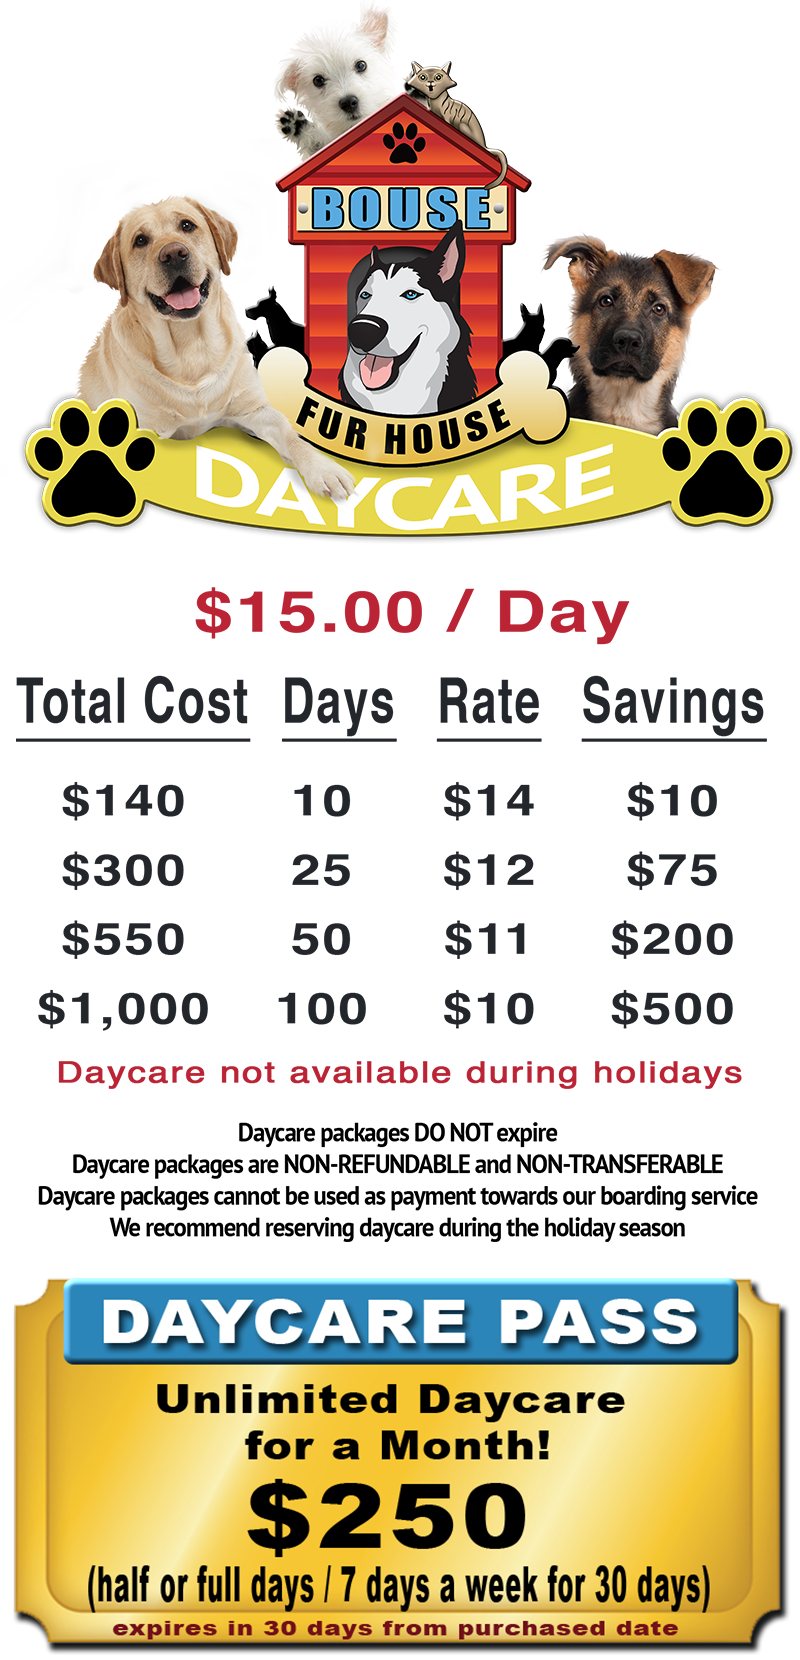 DayCarePrices